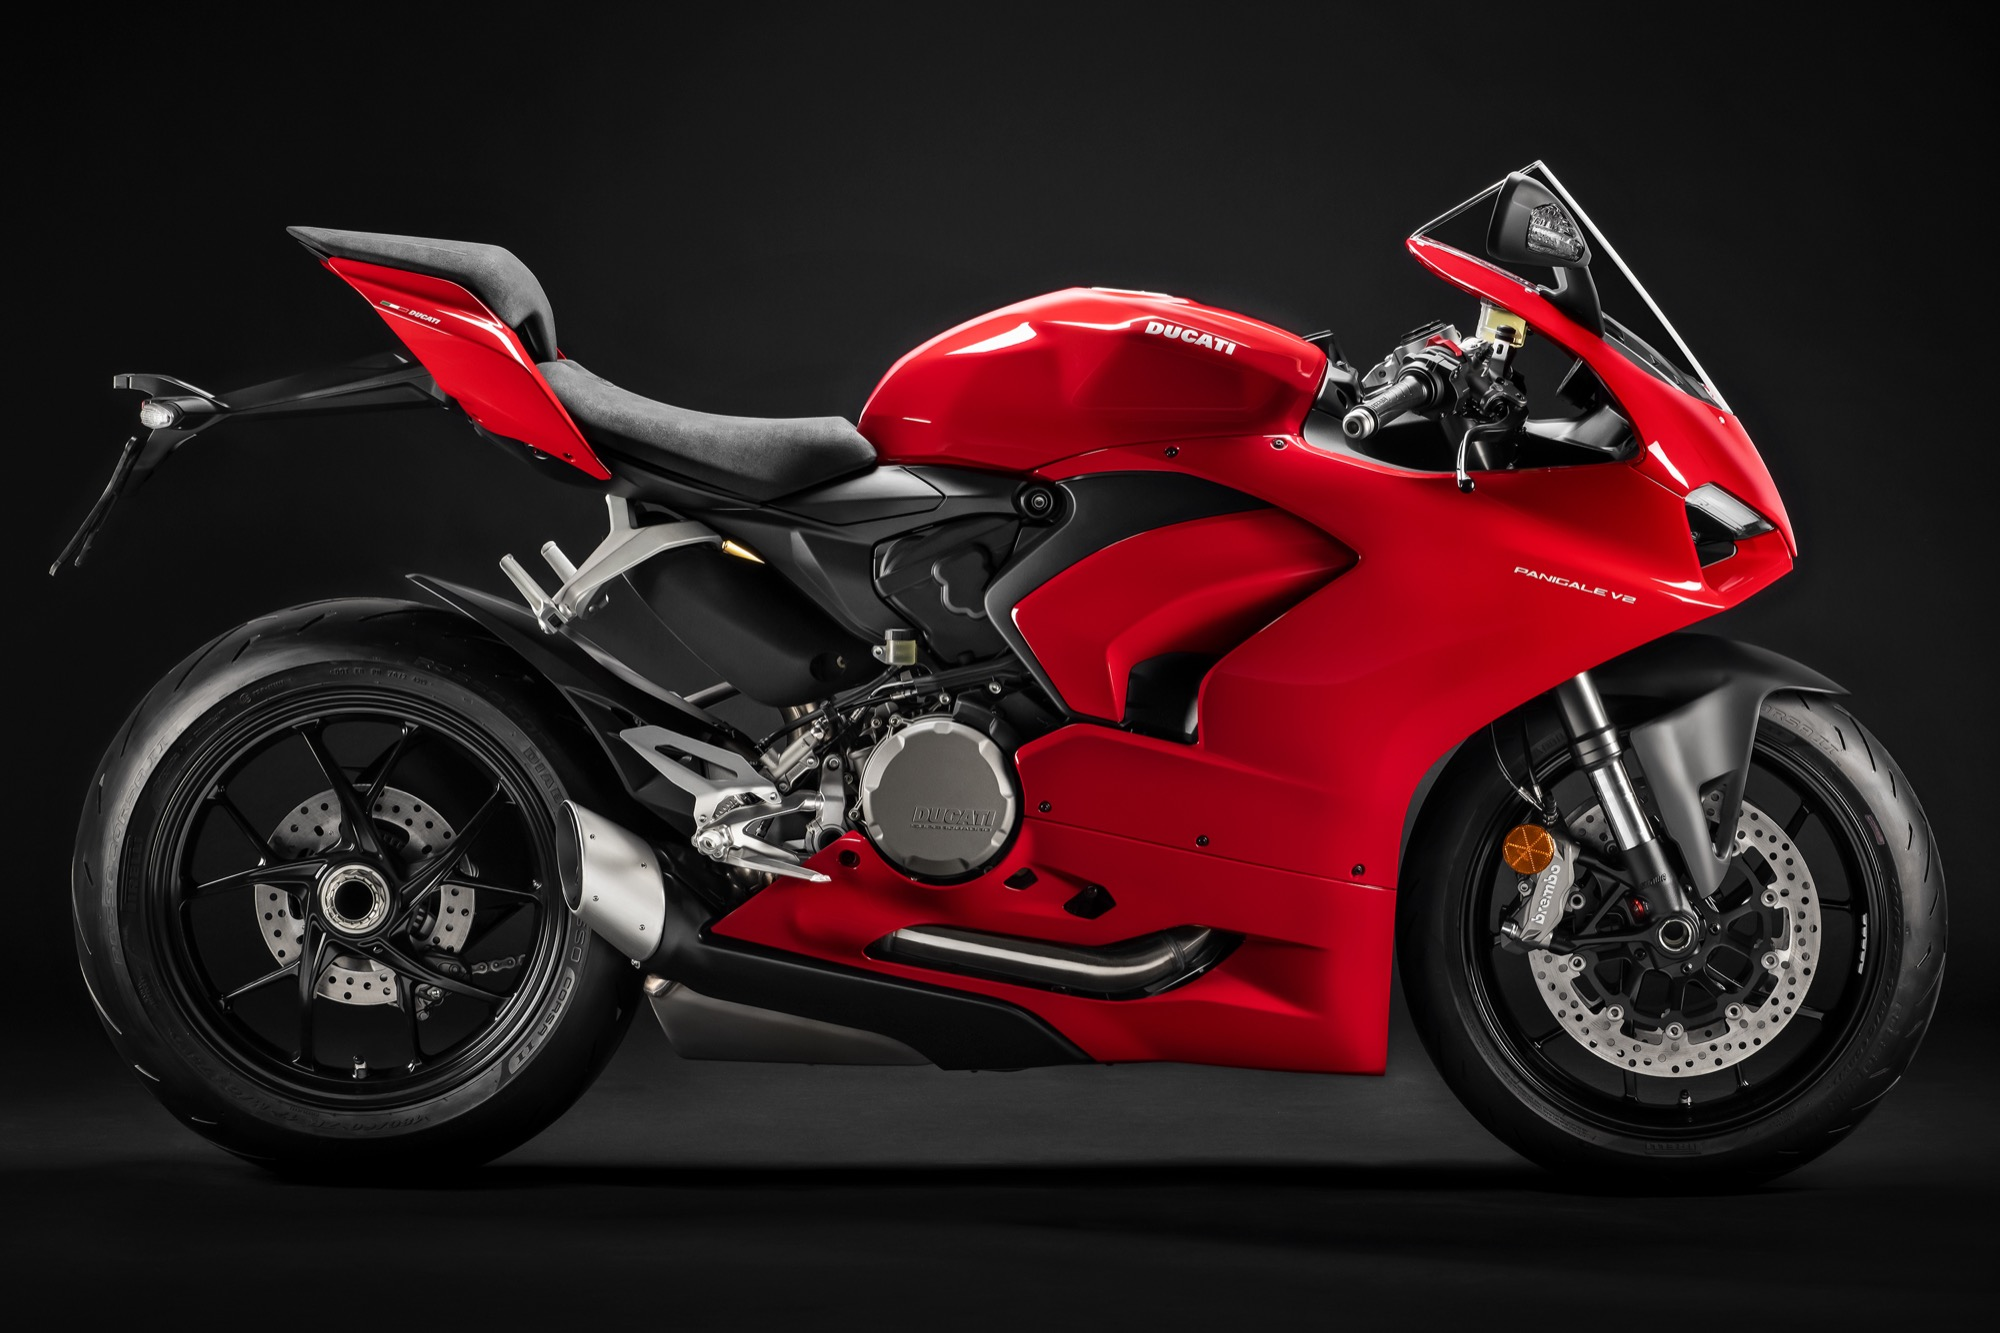 5db01bf70ee694d2153493d5-ducati-panigale